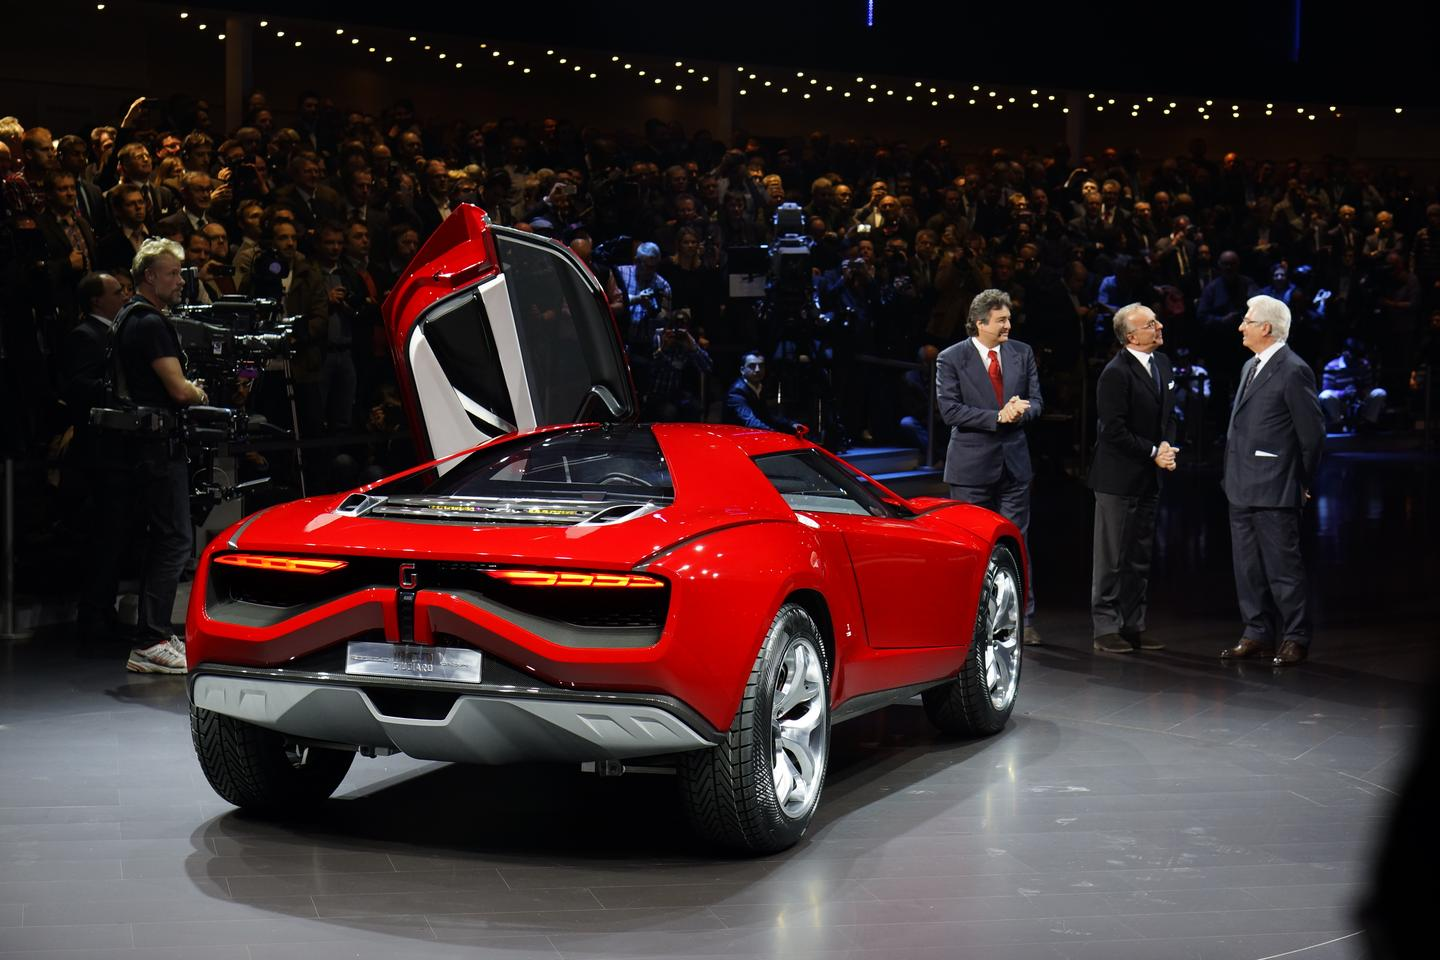 The Giugiaro Parkour coupé is powered by a V10 5.2‐liter petrol engine